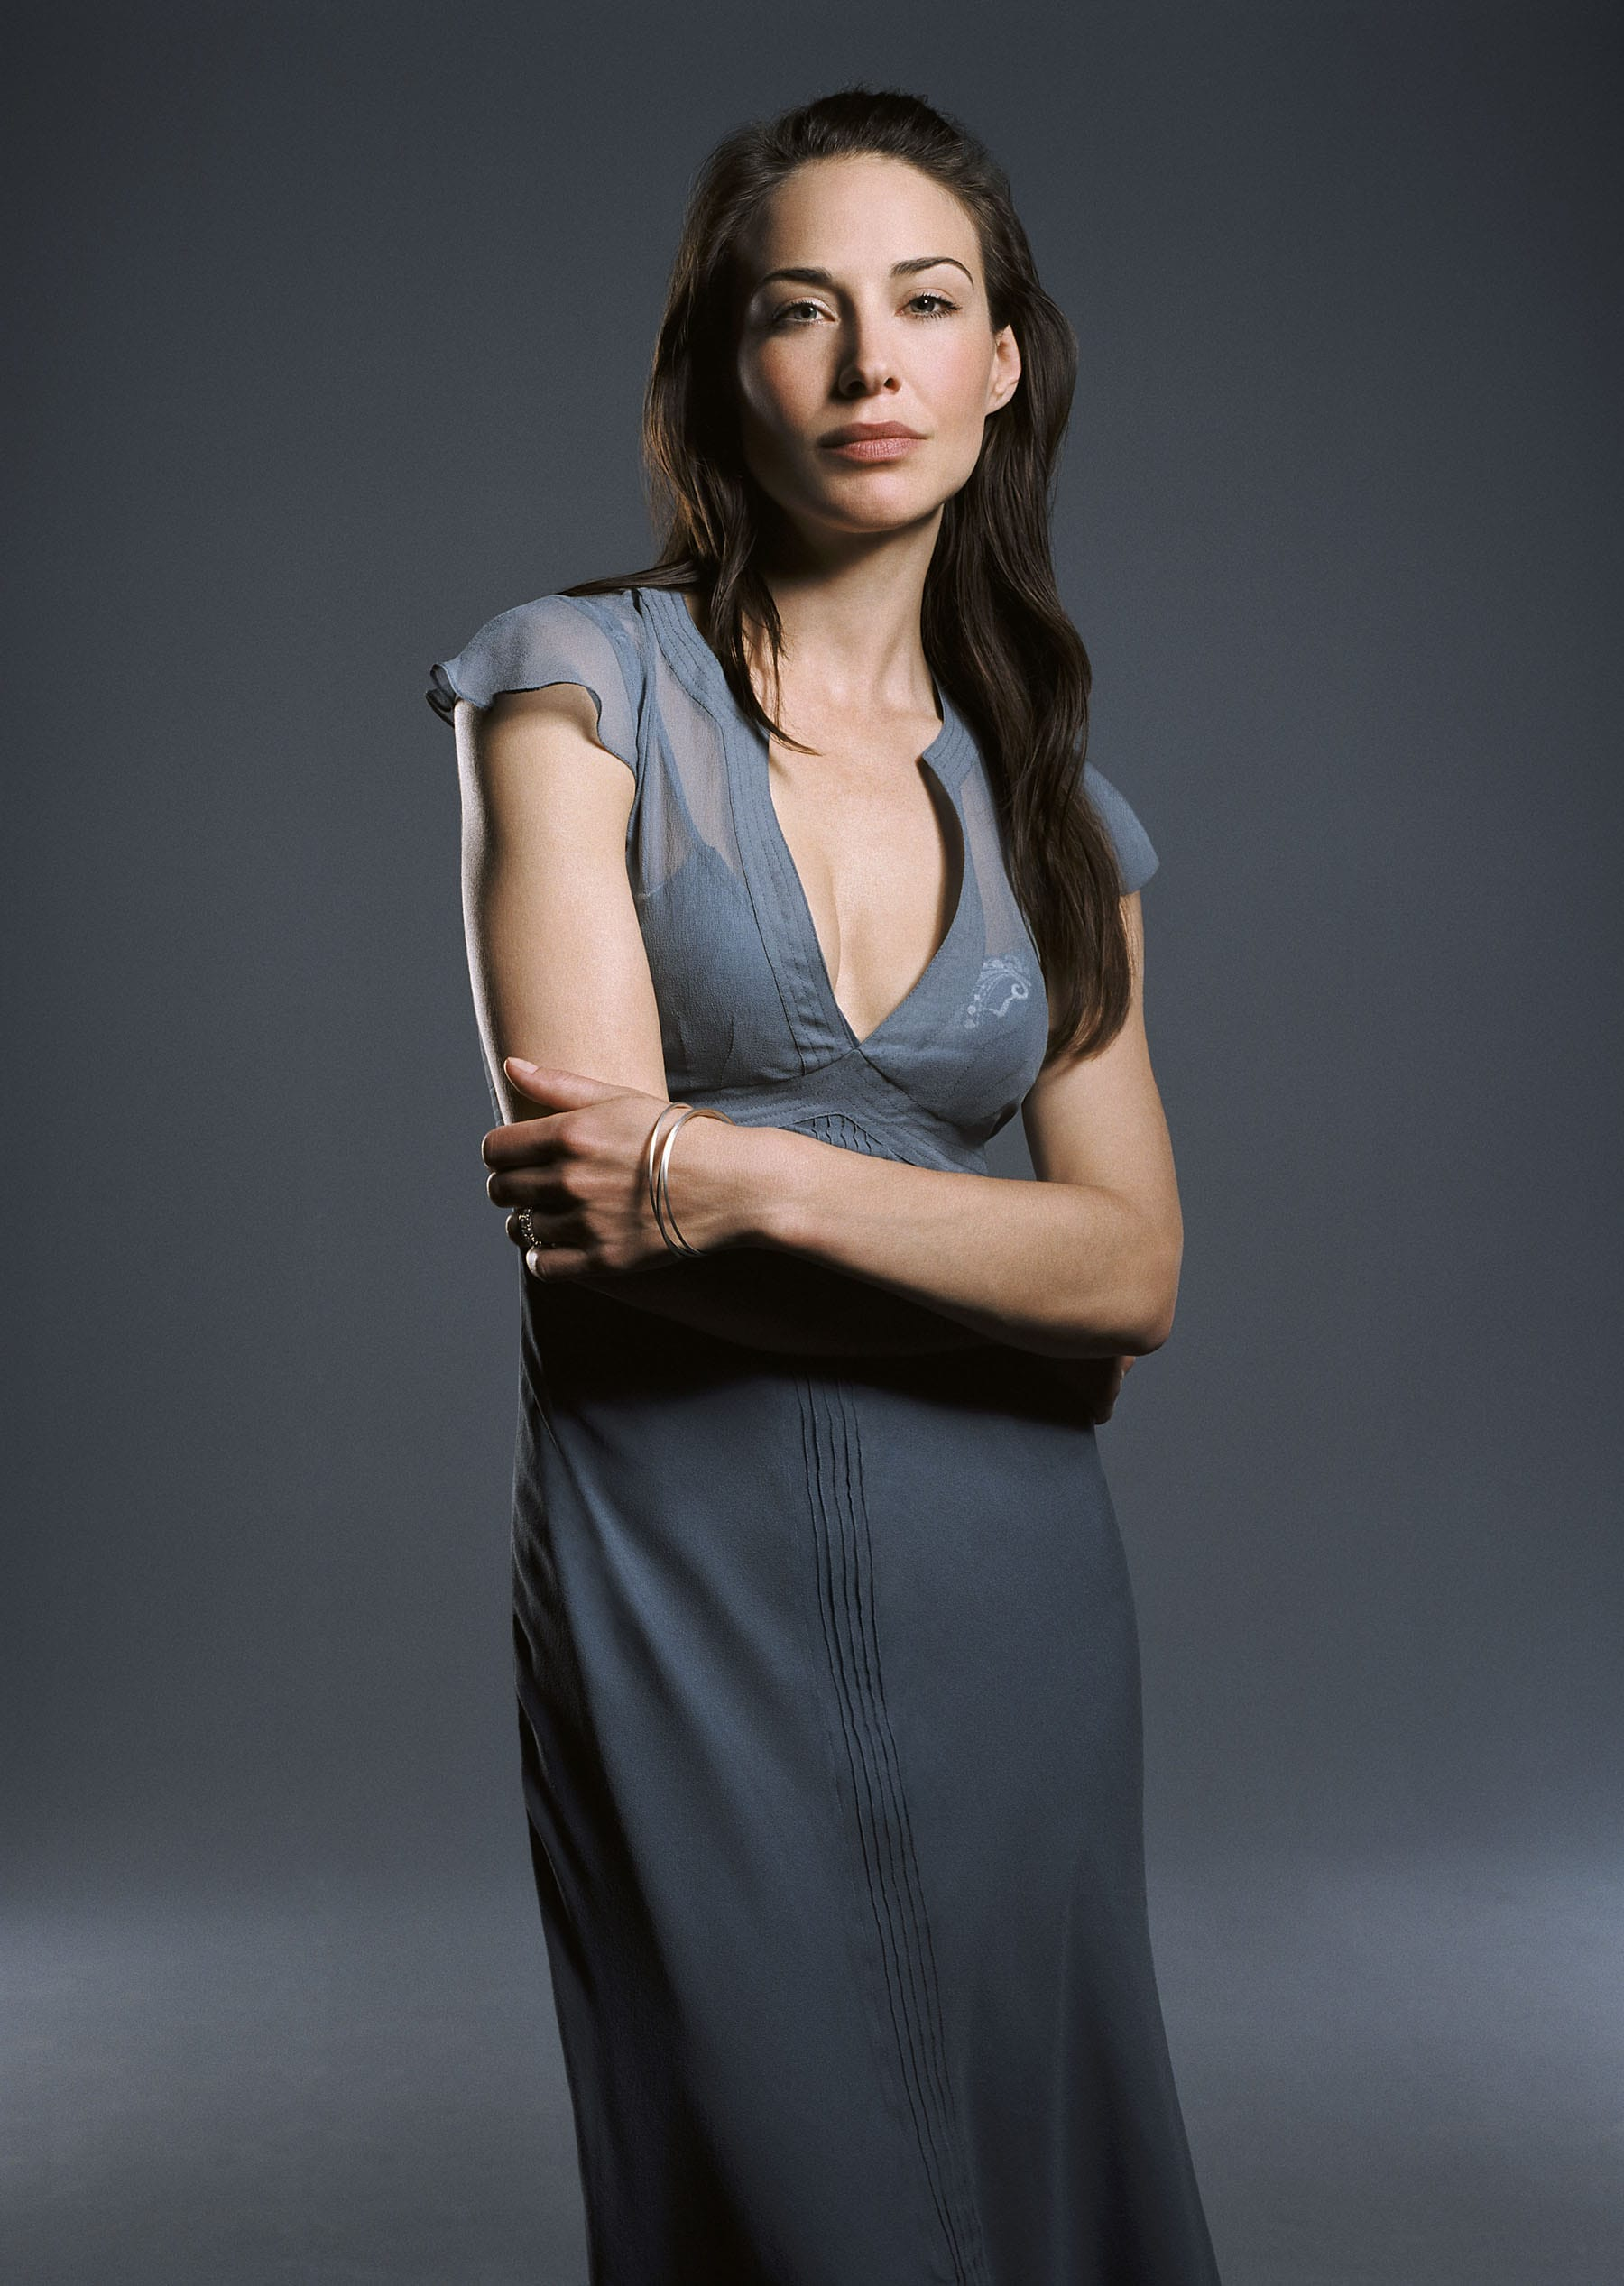 Claire-Forlani-awesome pics